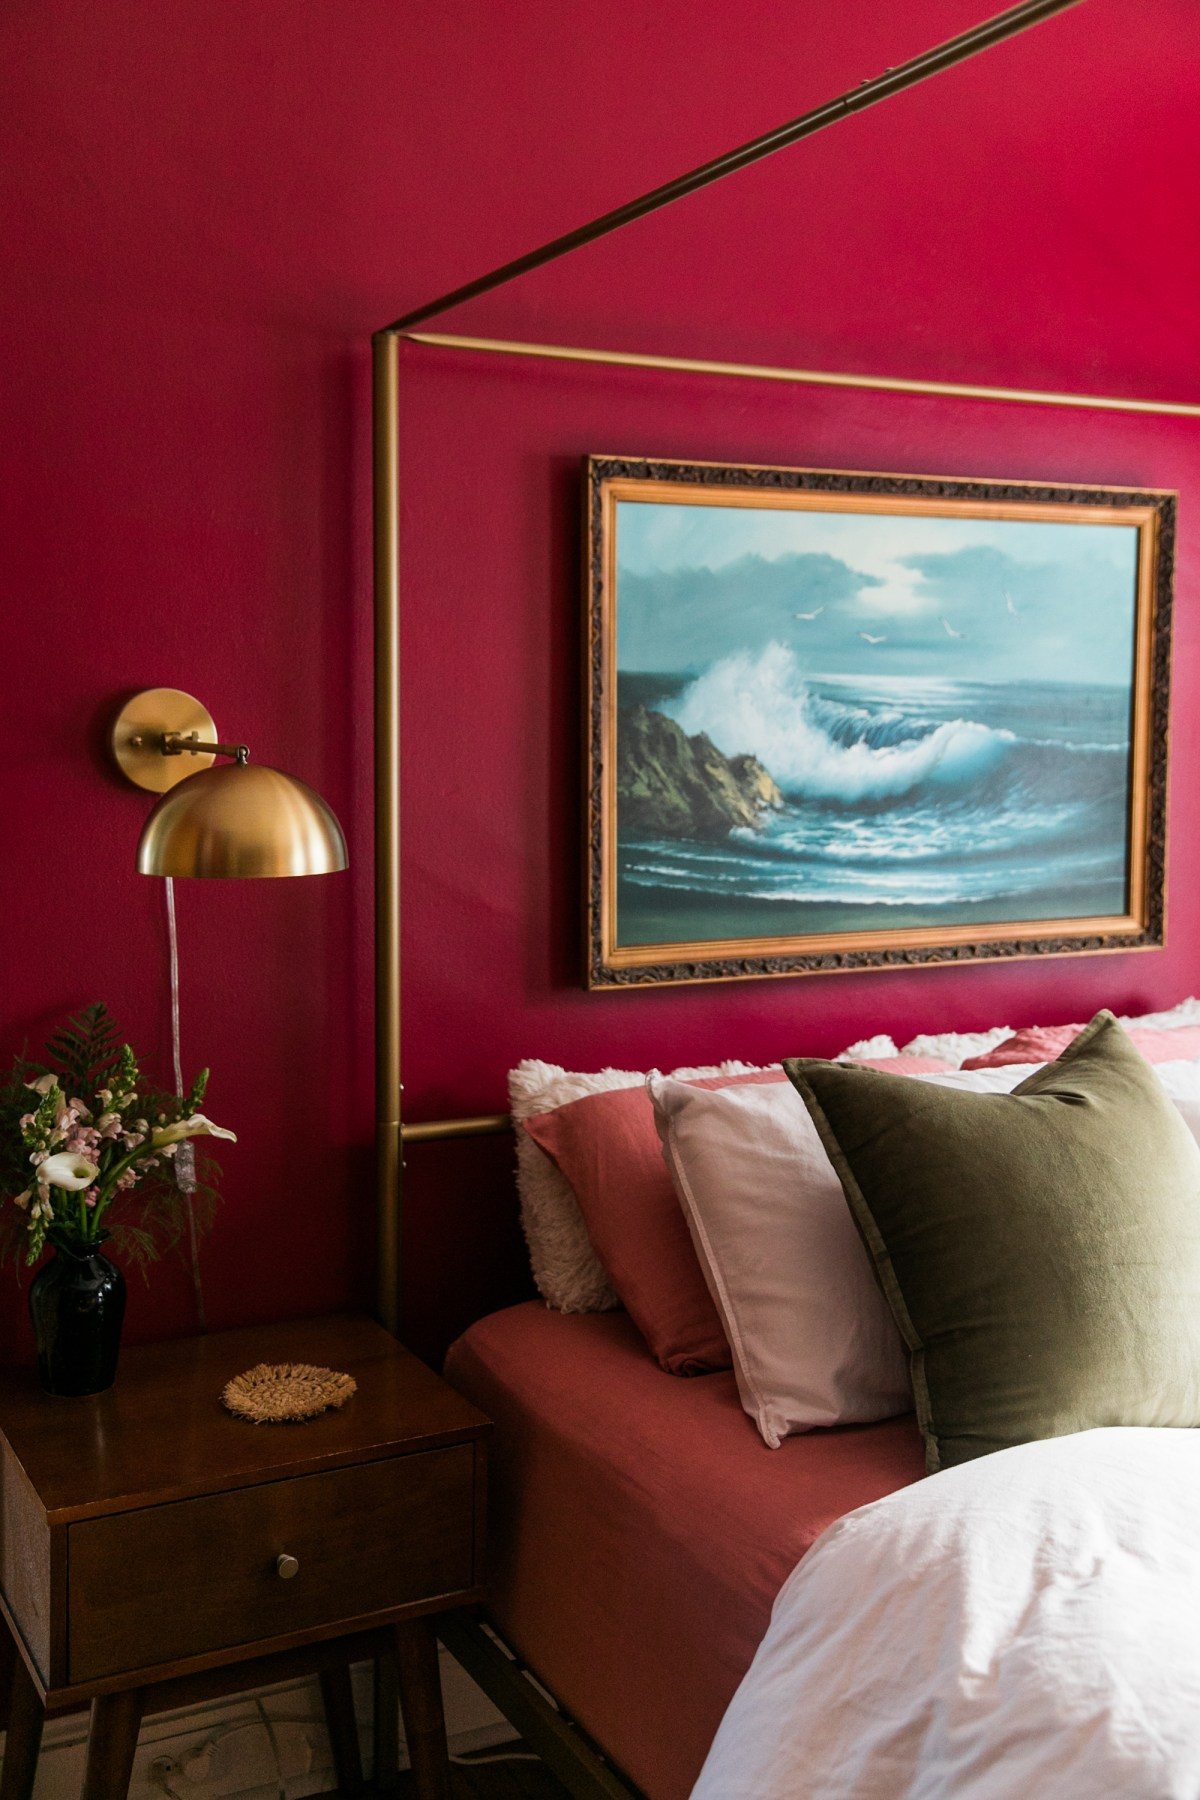 How Paint Transformed This Bedroom into a Luxurious Retreat | Romantic Vintage Timeless Bedroom Inspiration | Bedroom Ideas | Bedroom Makeover | Paint Transformations | JessicaBrigham.com